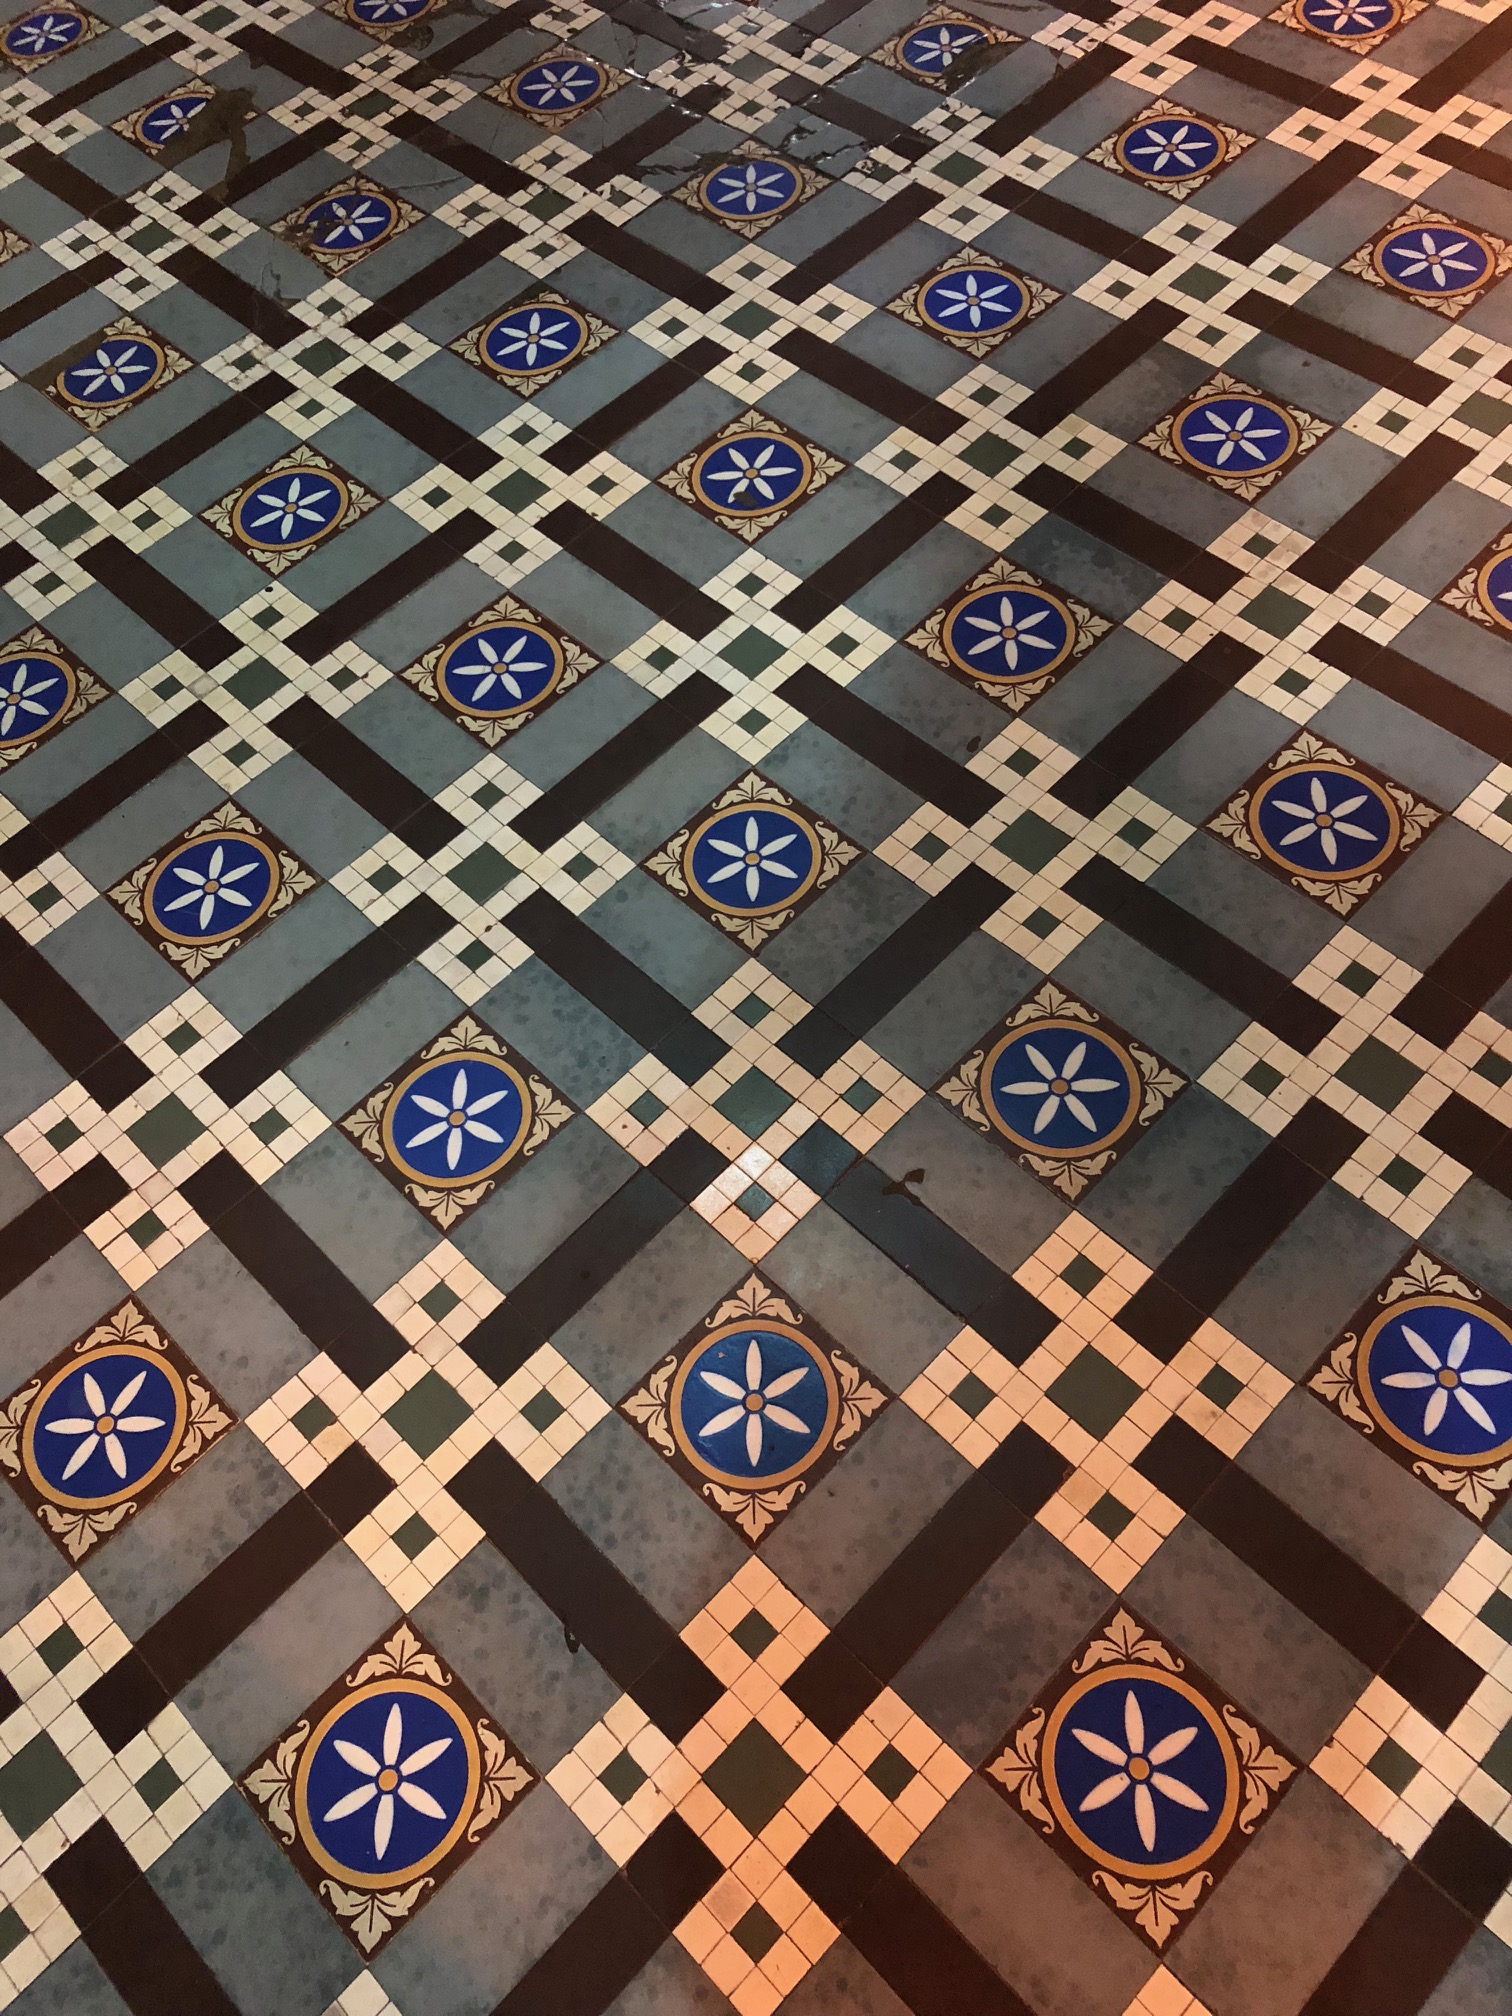 An intricate square pattern of floor tiles, including white six-petaled flowers on a blue background and small off-white tiles arranged in a heraldic knot.